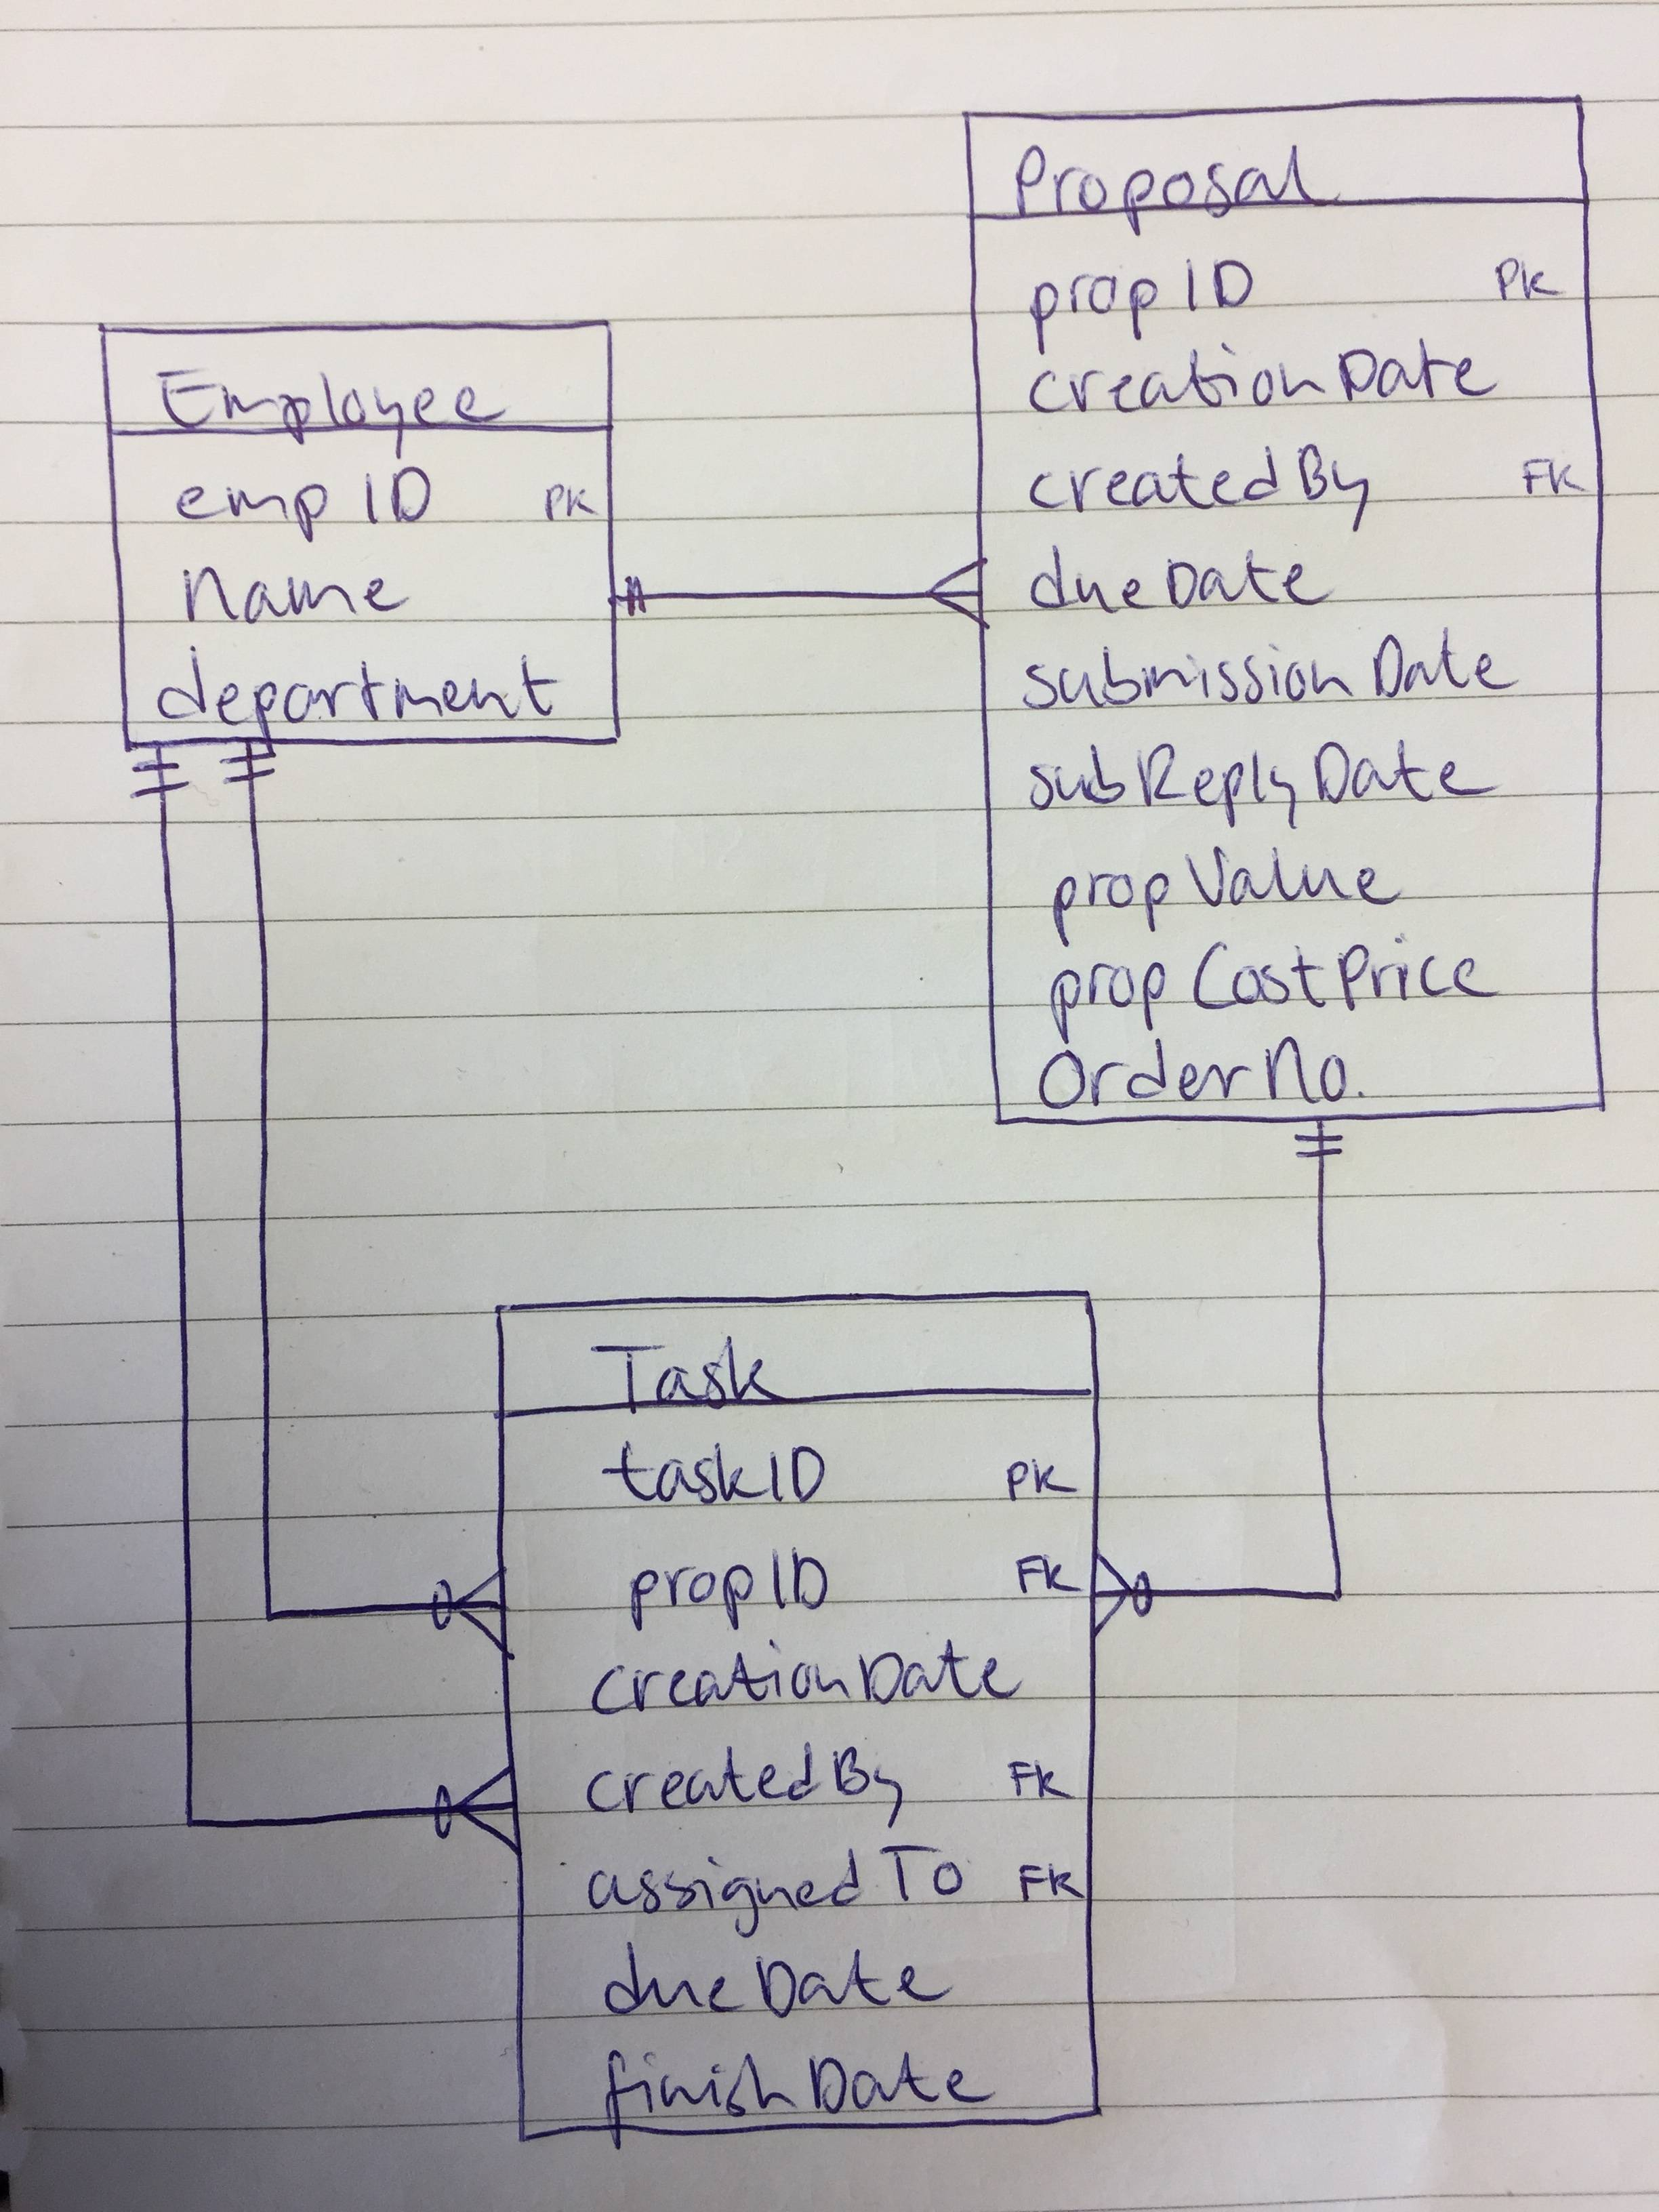 Multiple One To Many Relationships Between Tables - Database throughout One To One Erd